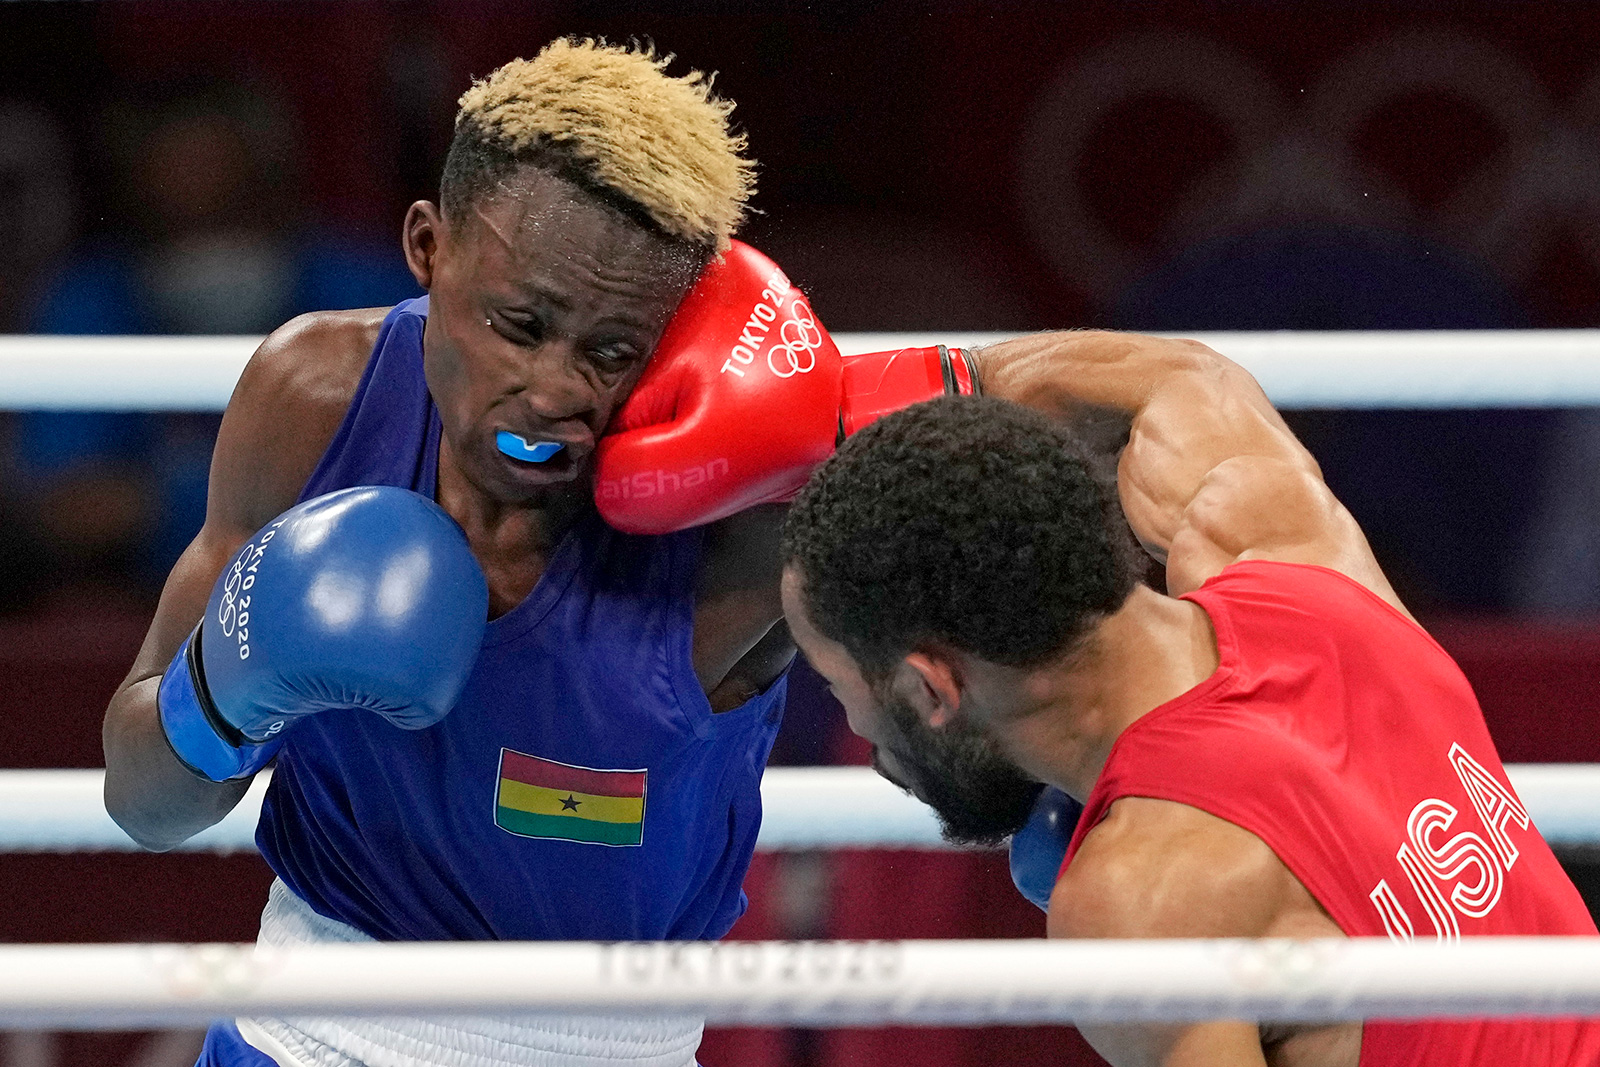 The United States' Duke Ragan, right, exchanges punches with Ghana's Samuel Takyi during their men's featherweight 57-kg semifinal boxing match on Tuesday.